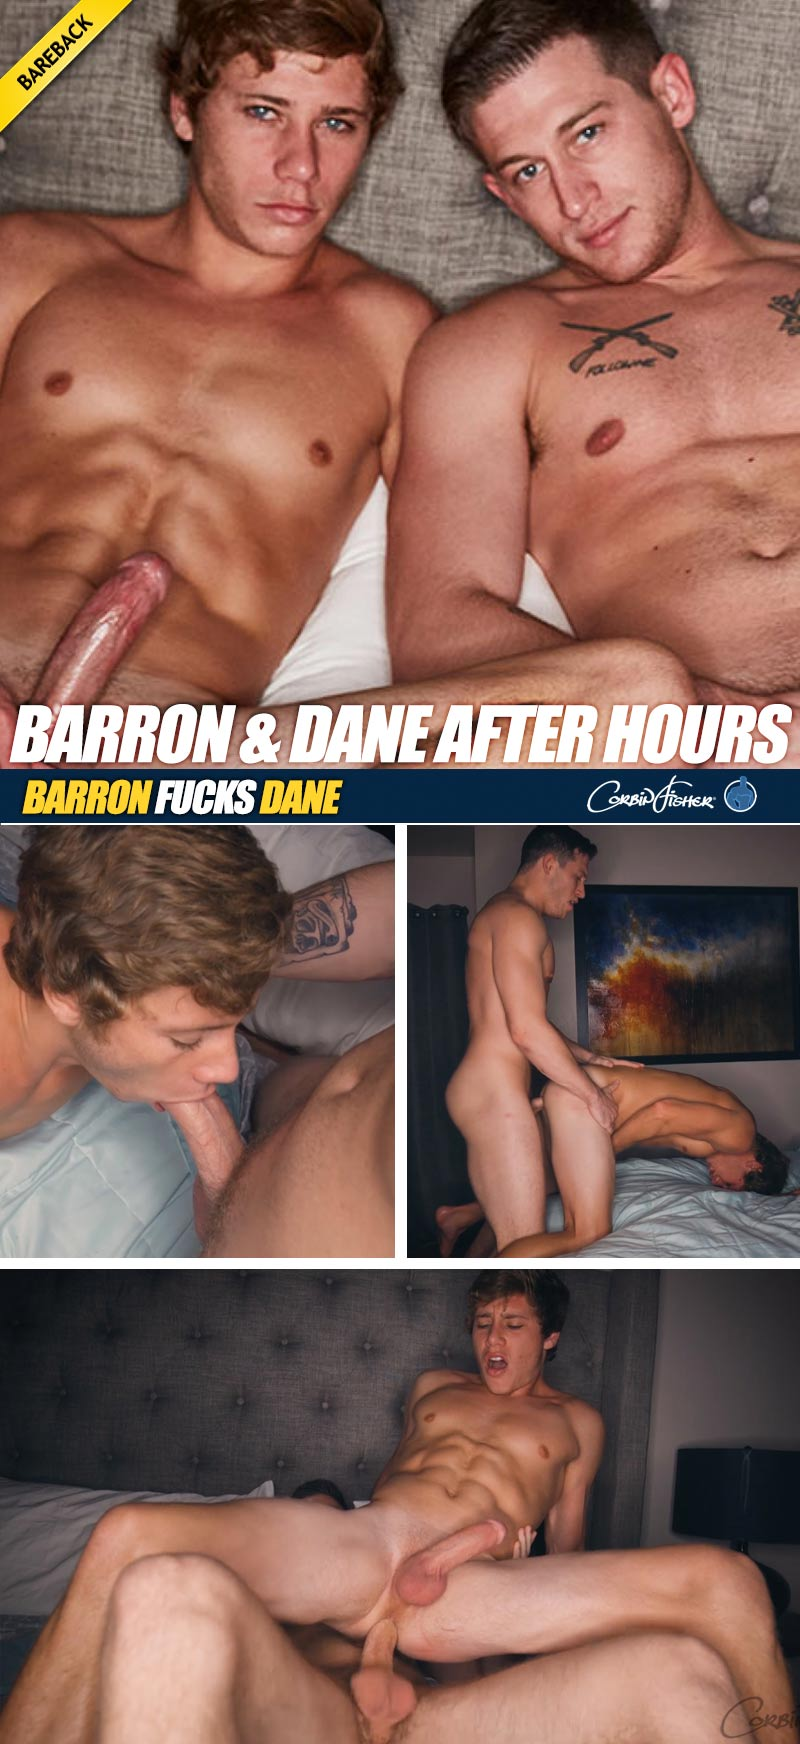 Barron & Dane After Hours at CorbinFisher